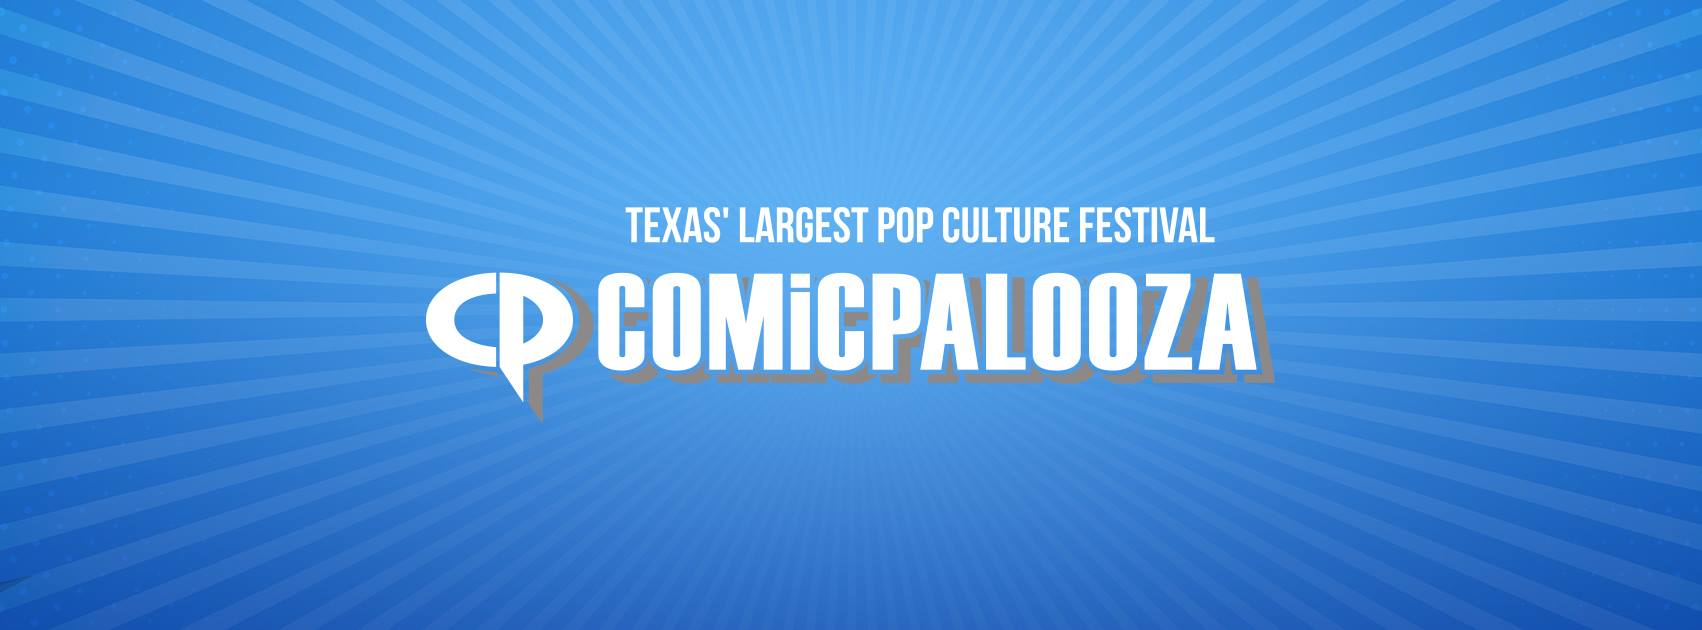 Photo Credit: Comicpalooza